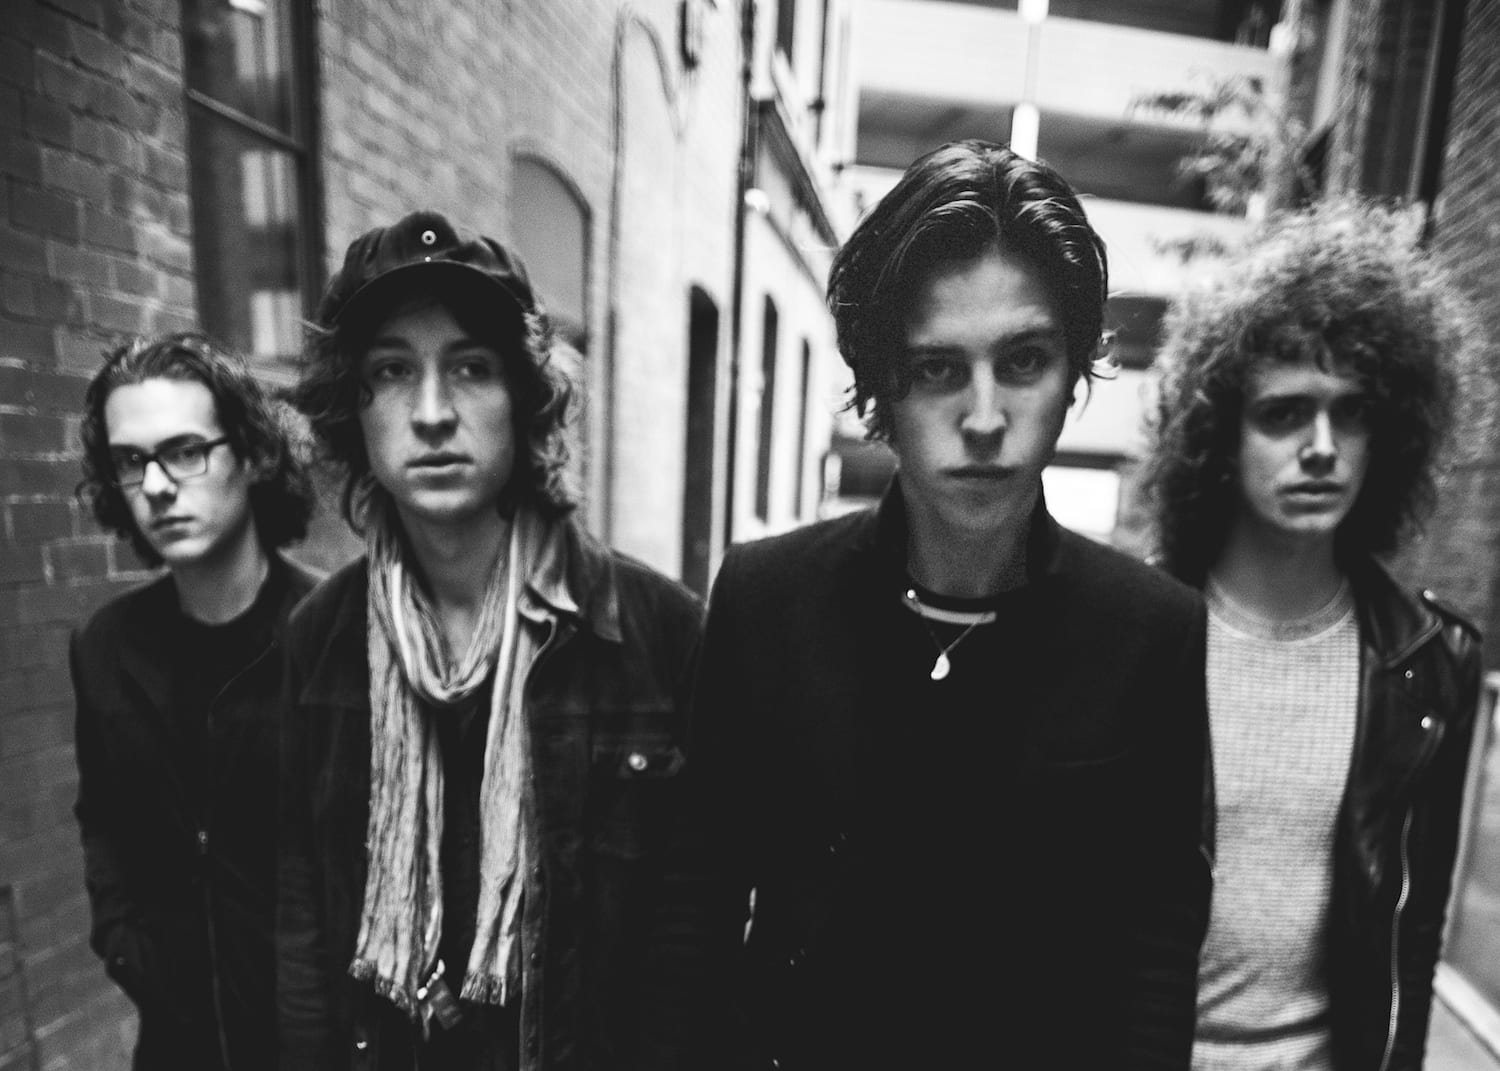 Album Review: The Ride // Catfish and the Bottlemen